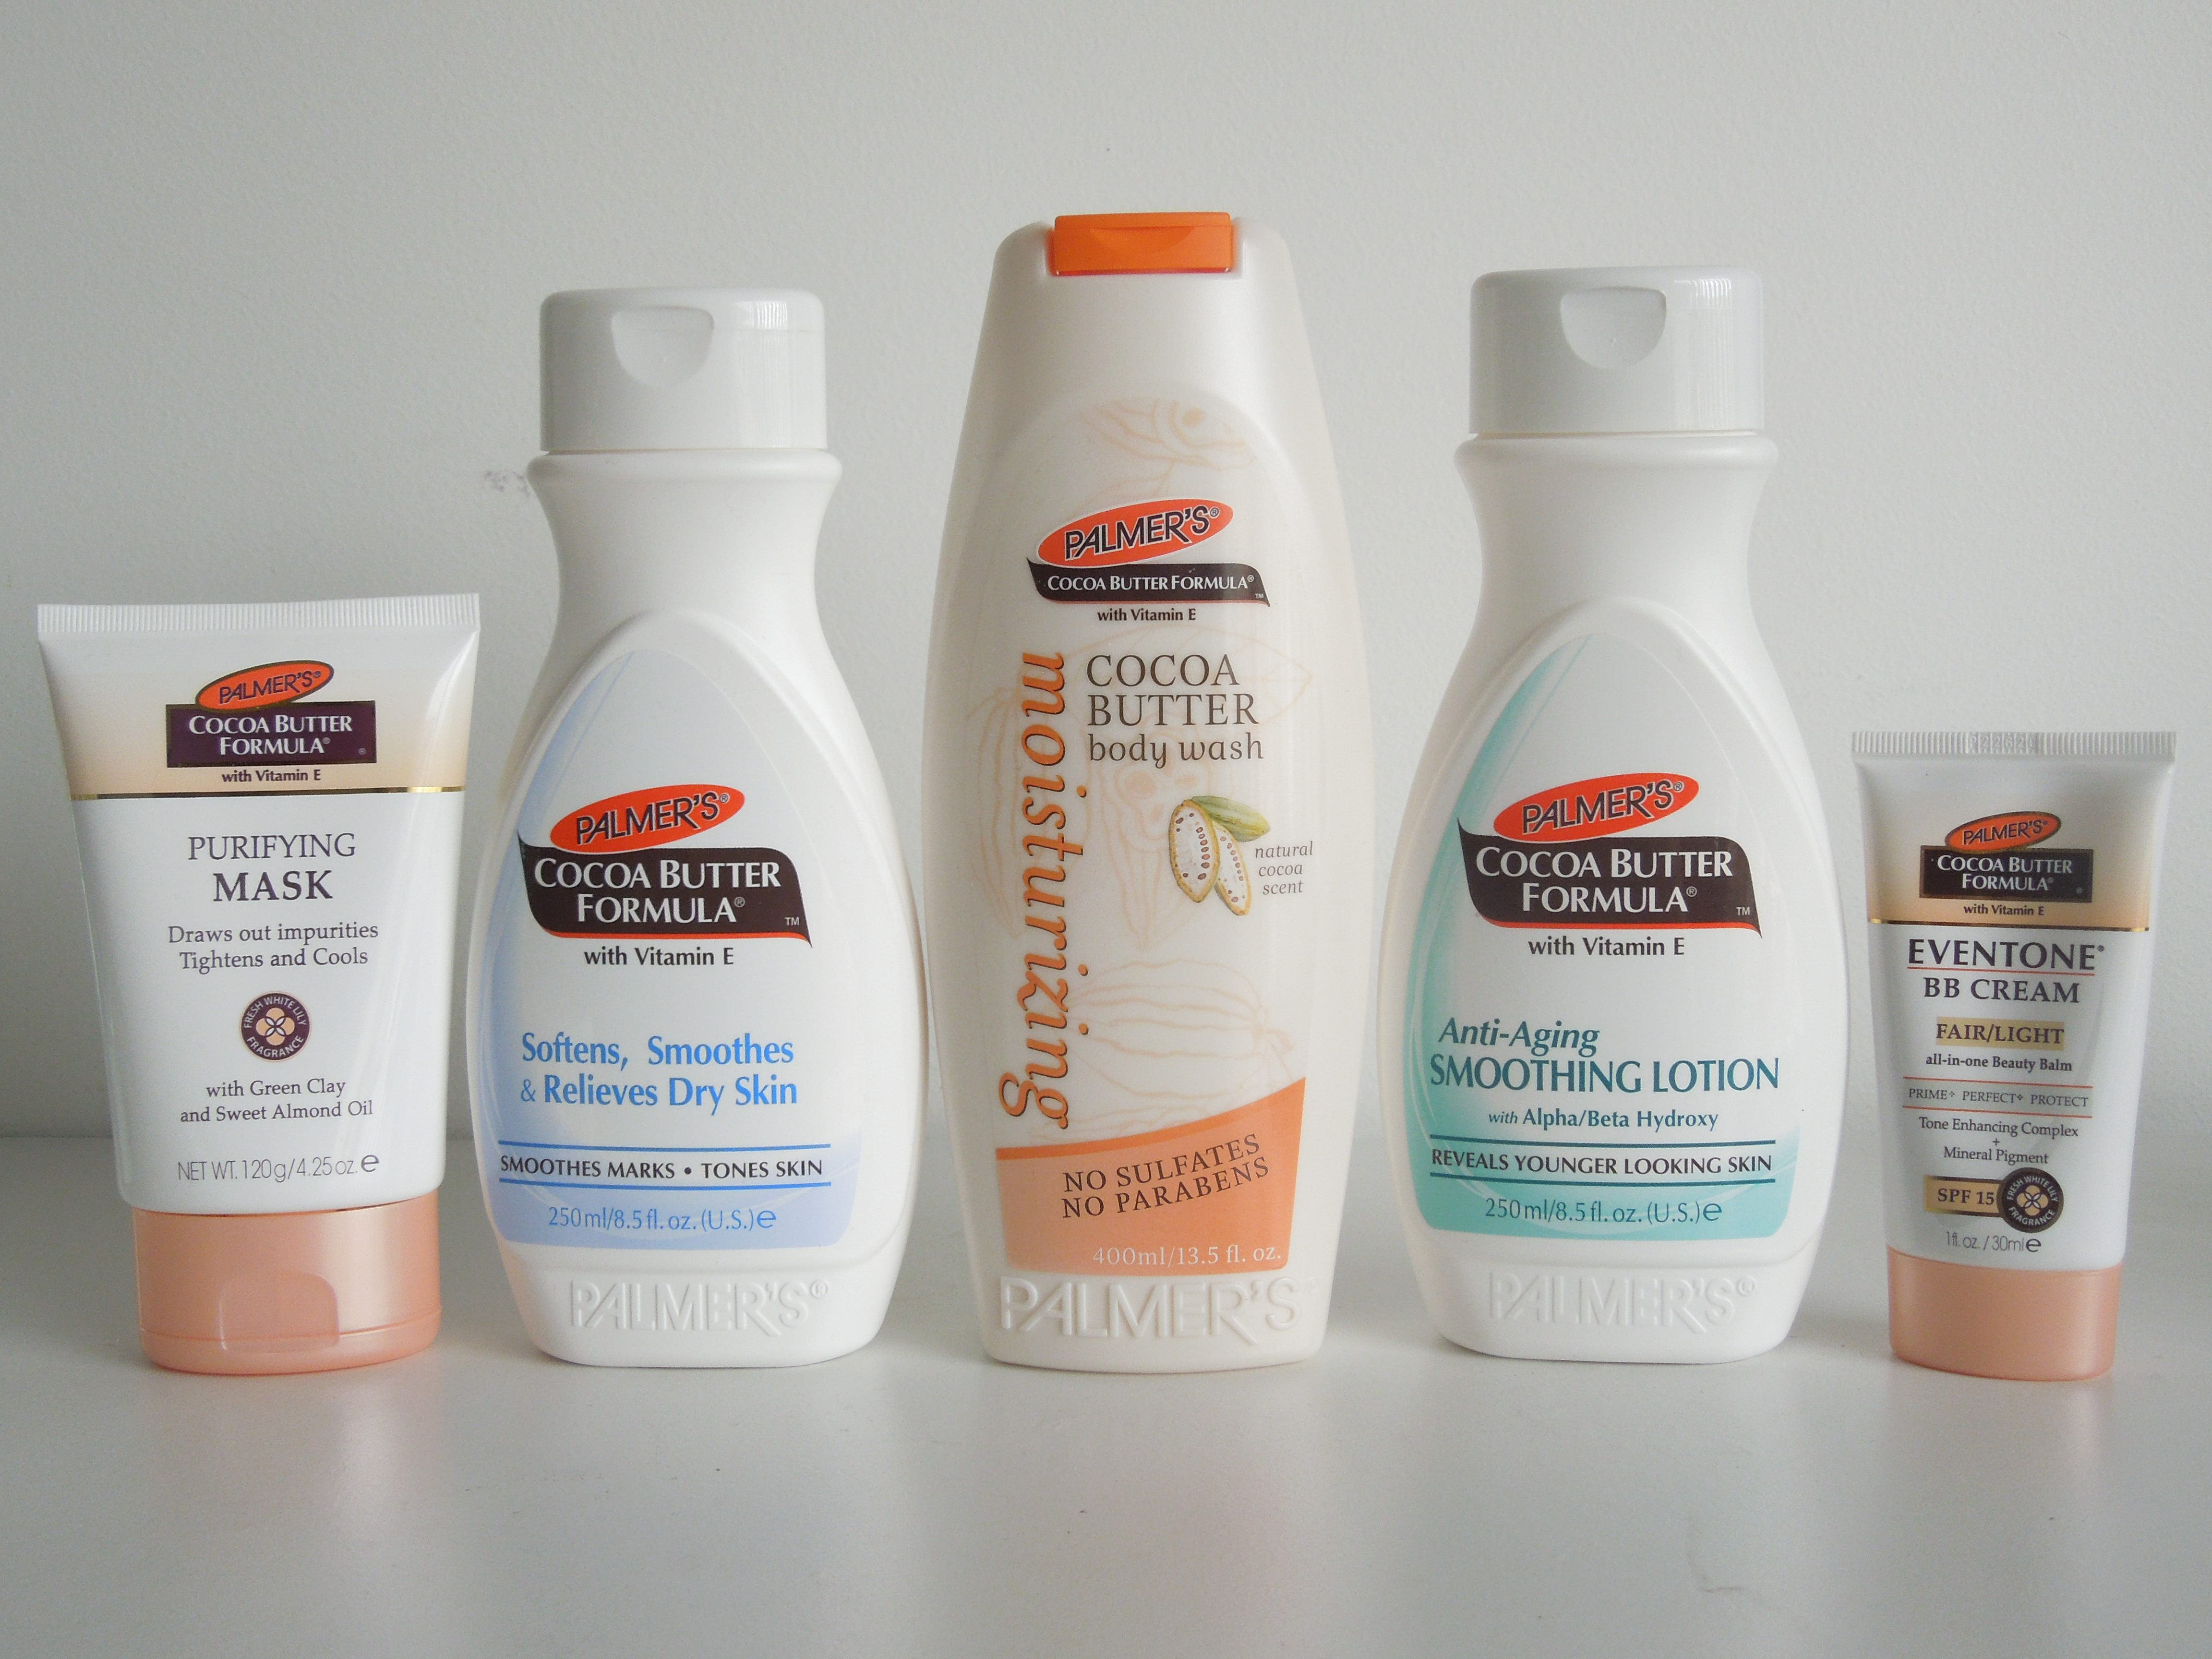 Taking A Look At Palmer S Cocoa Butter Range Tried And Tested Blog